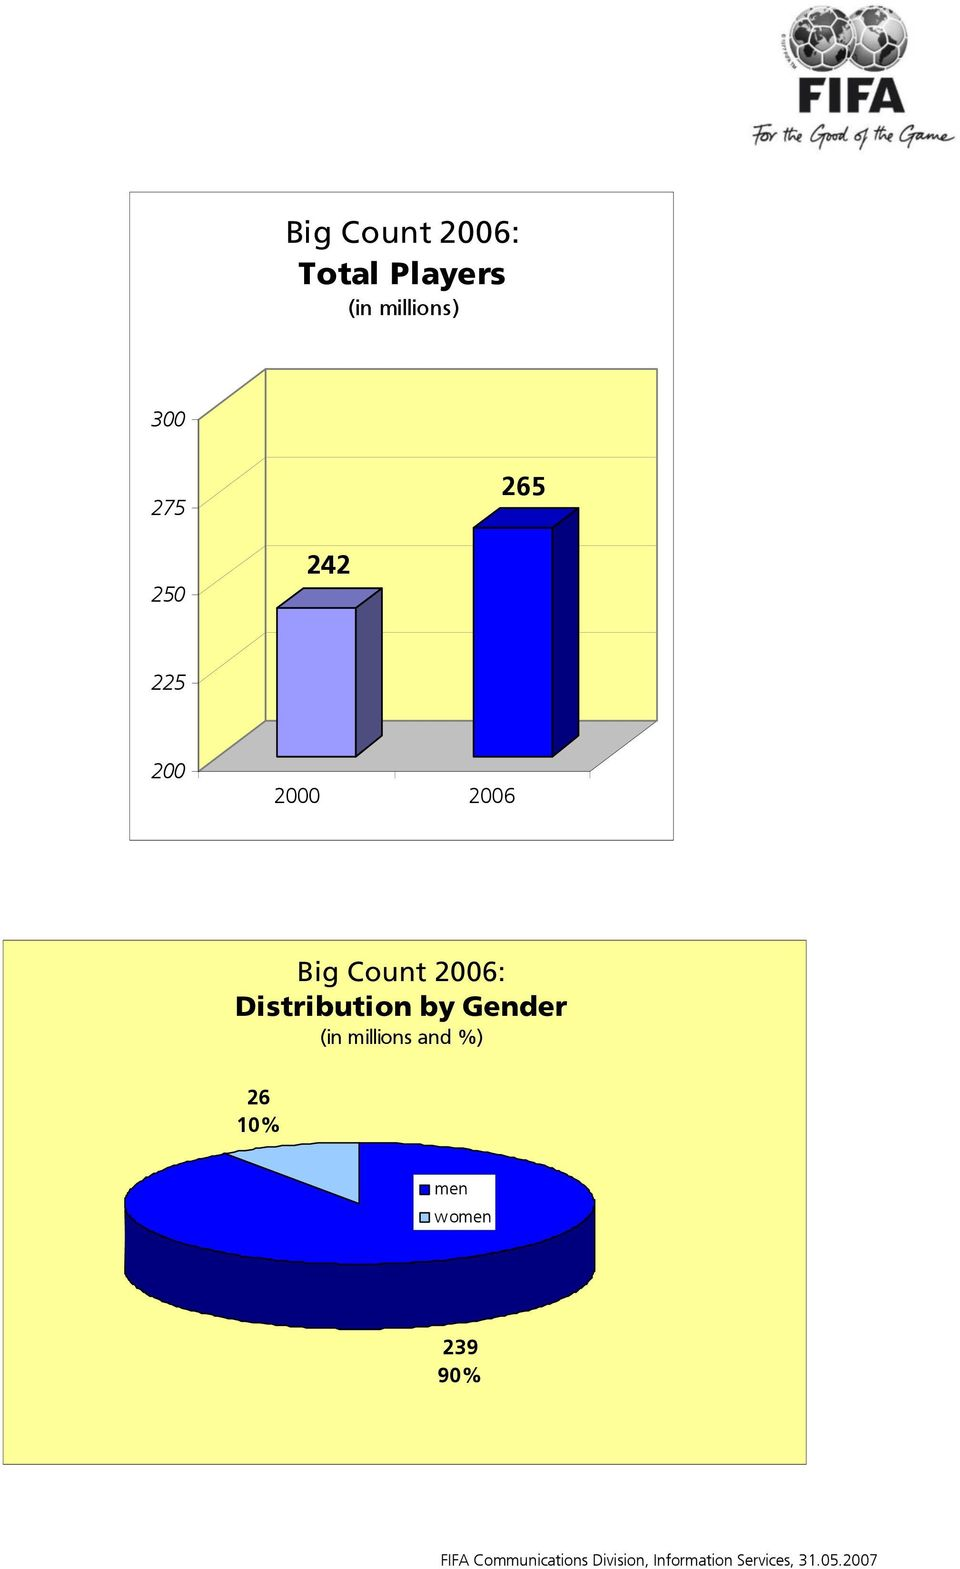 Distribution by Gender (in